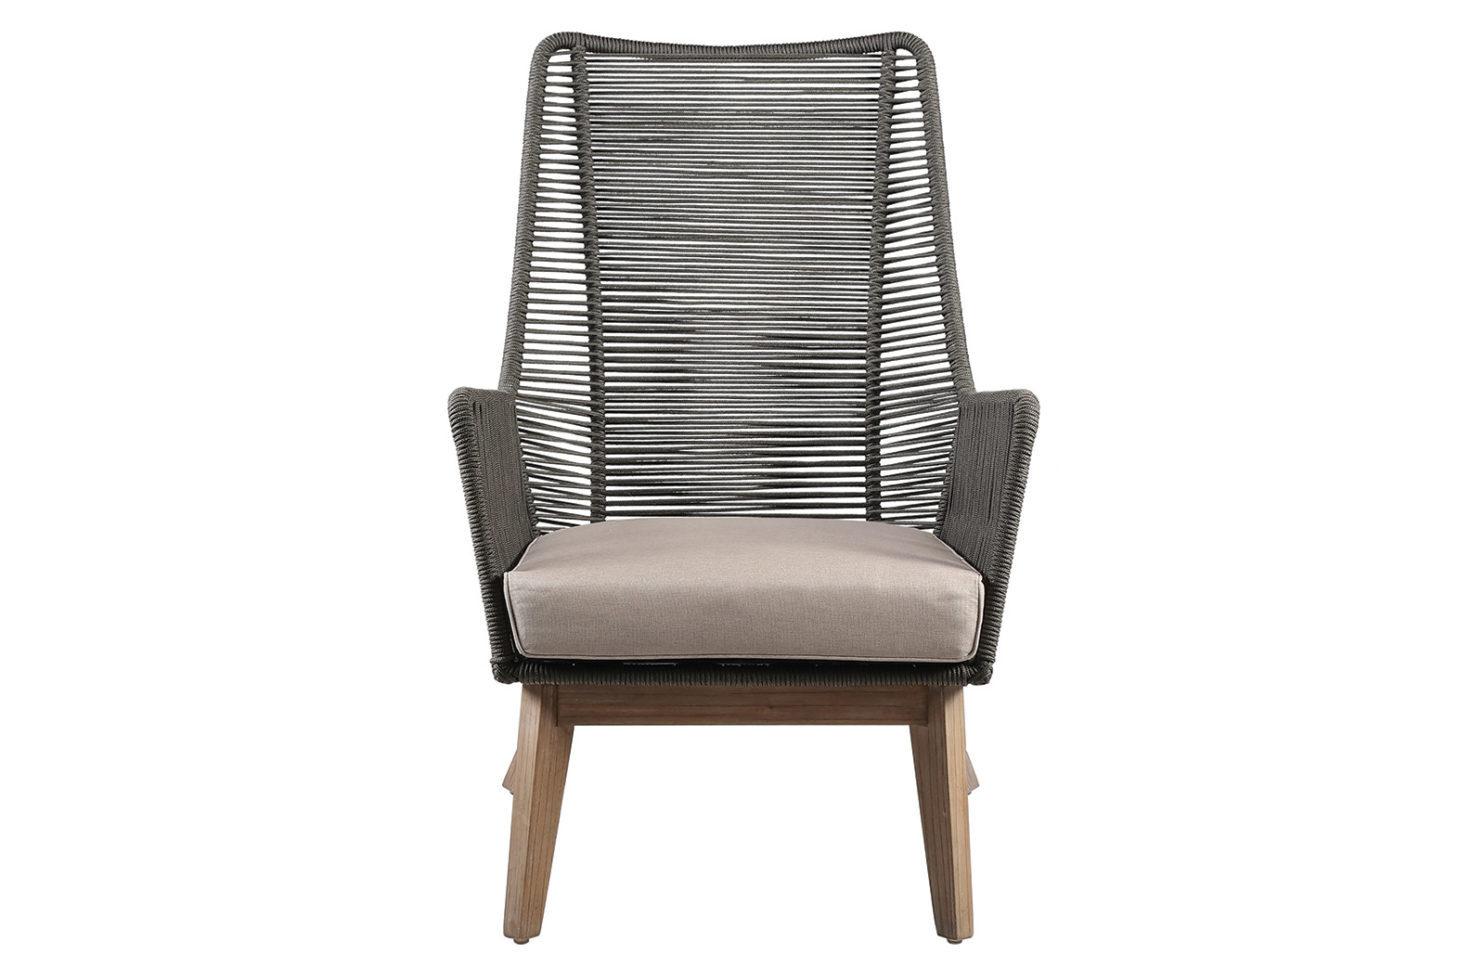 marco polo lounge chair 504FT415P2 E 1 front